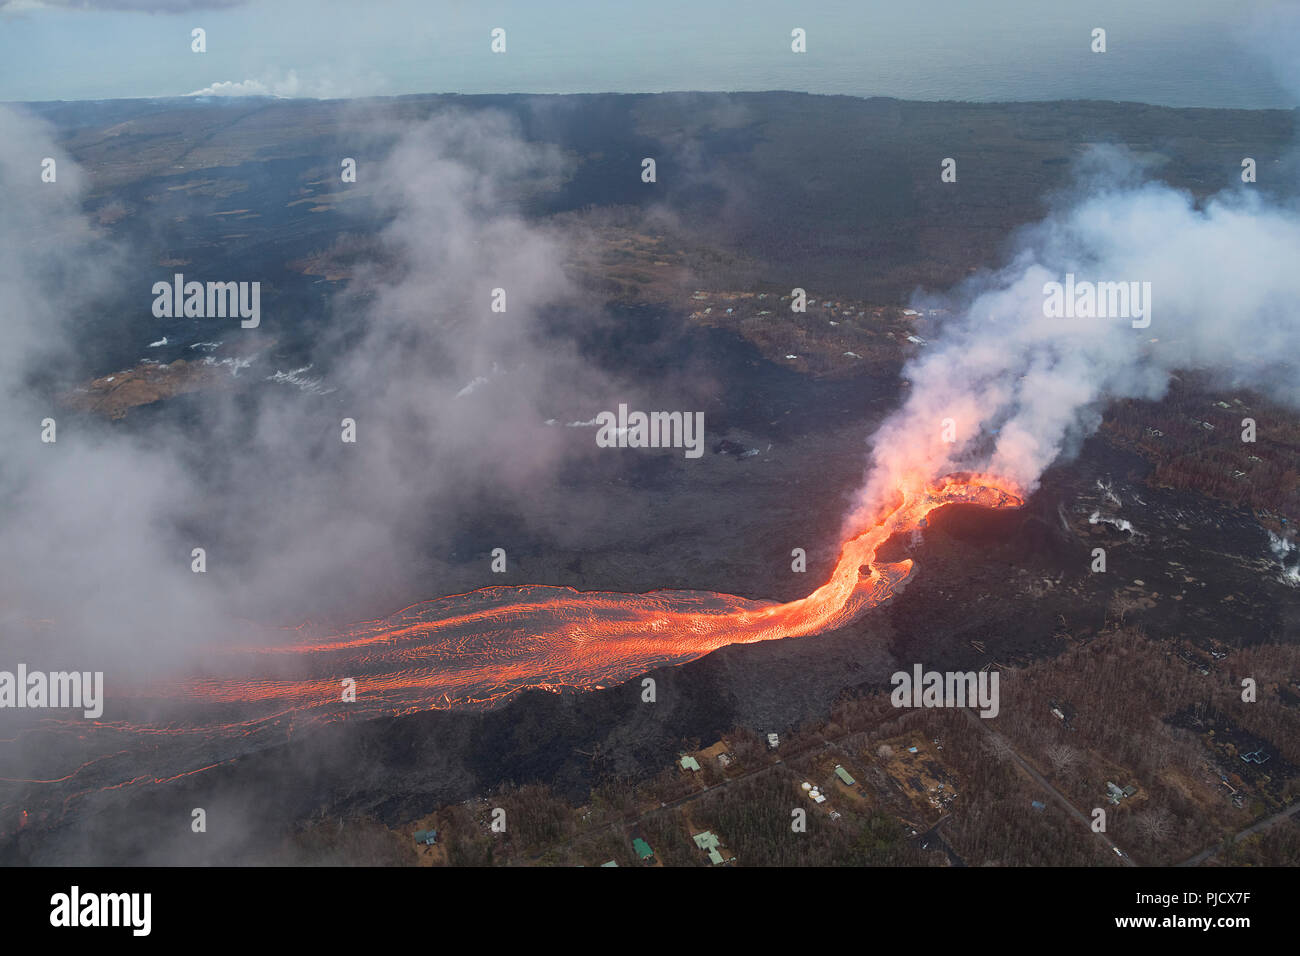 Lava erupts from fissure 8 of the Kilauea Volcano east rift zone in Leilani Estates, near Pahoa, Hawaii, and flows downhill as a glowing river of lava - Stock Image